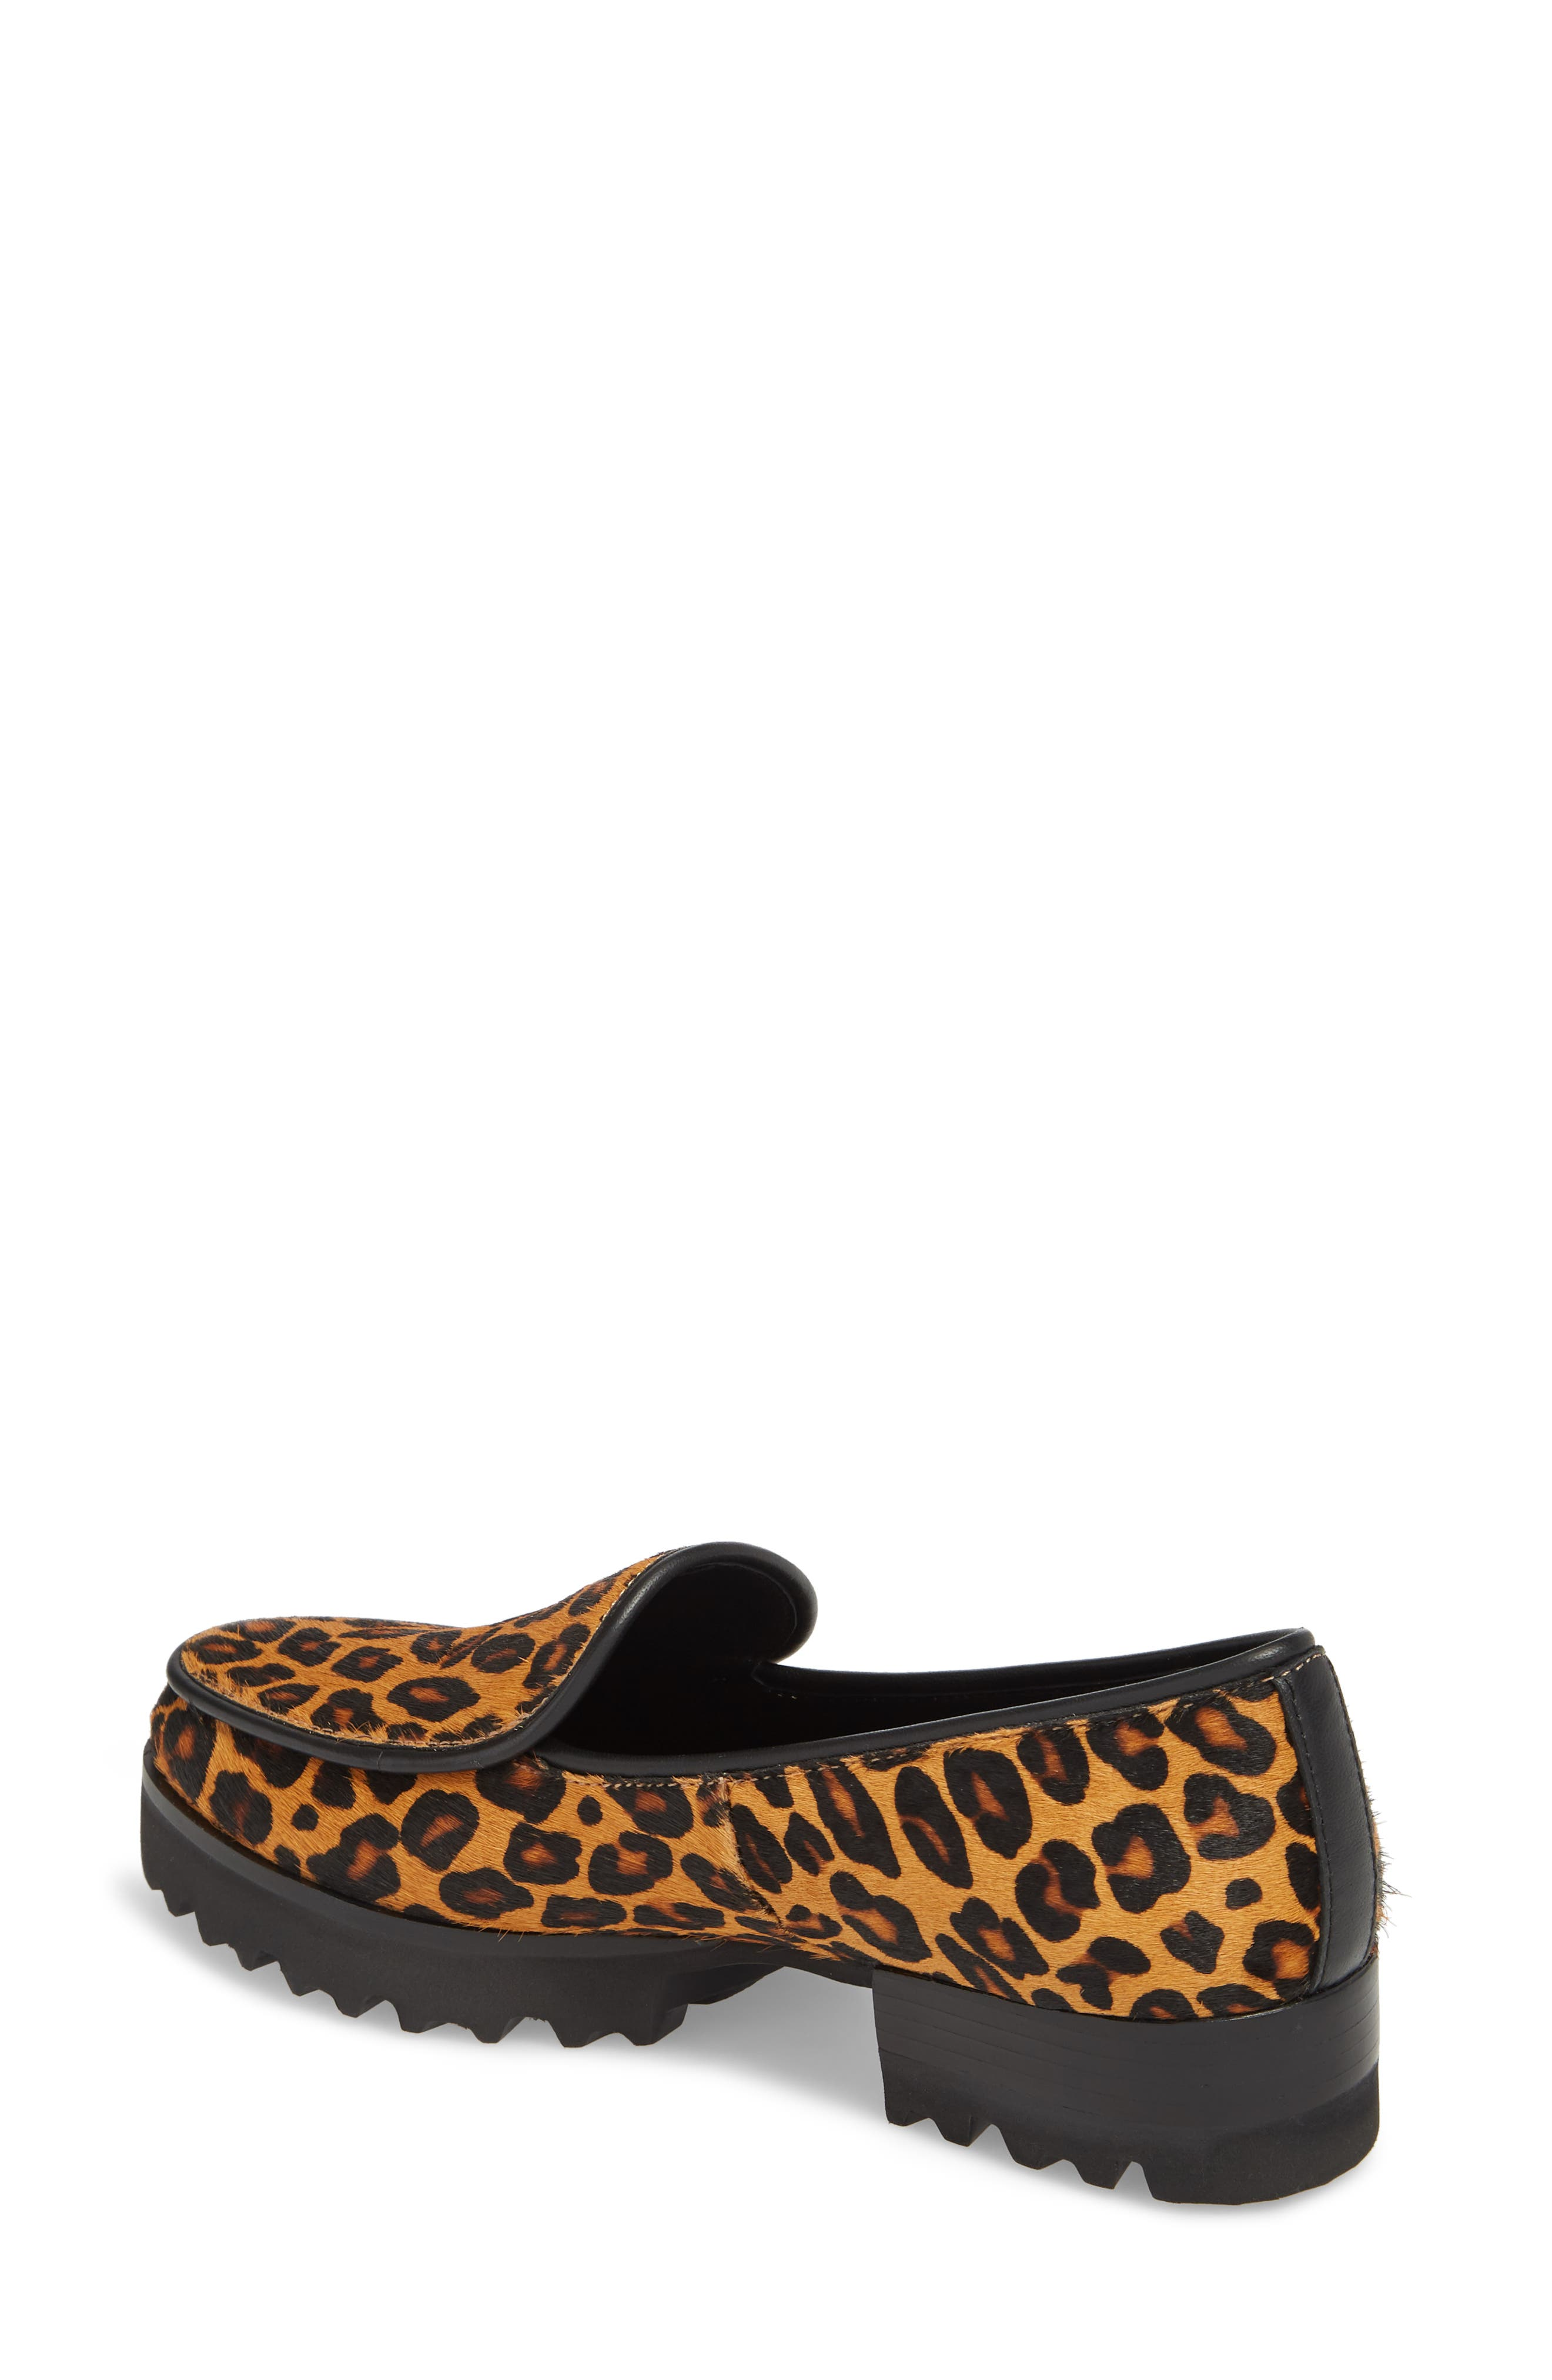 Enza Lug Sole Loafer,                             Alternate thumbnail 2, color,                             LEOPARD PRINT HAIRCALF